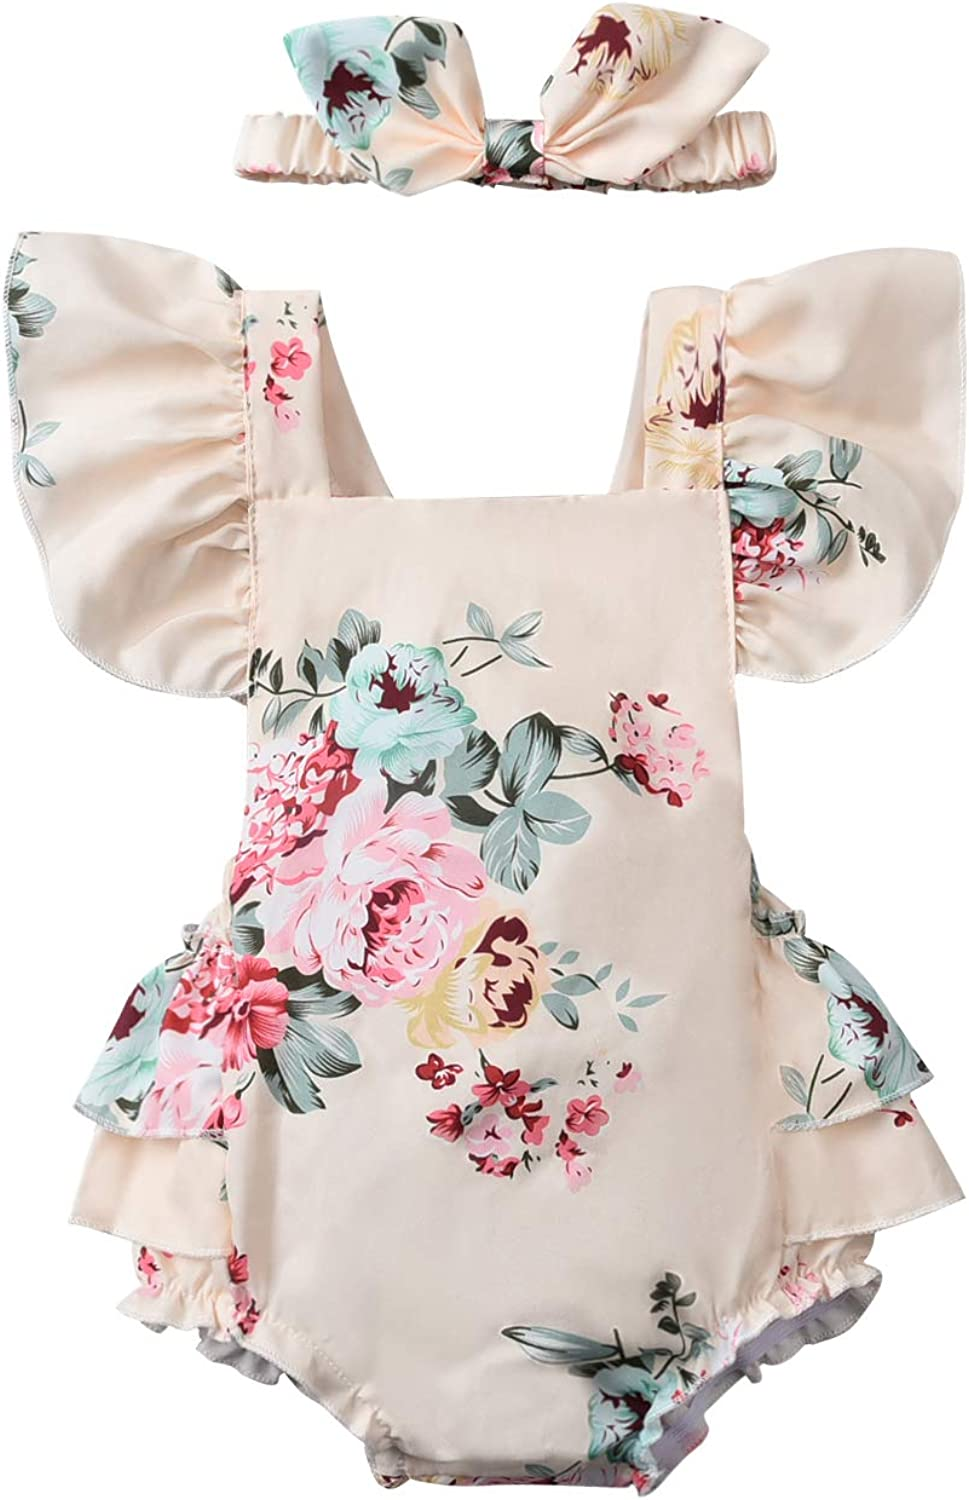 Baby Girl Floral Romper Outfit Bodysuit Ruffle Infant Ju Vintage Popular products Mesa Mall